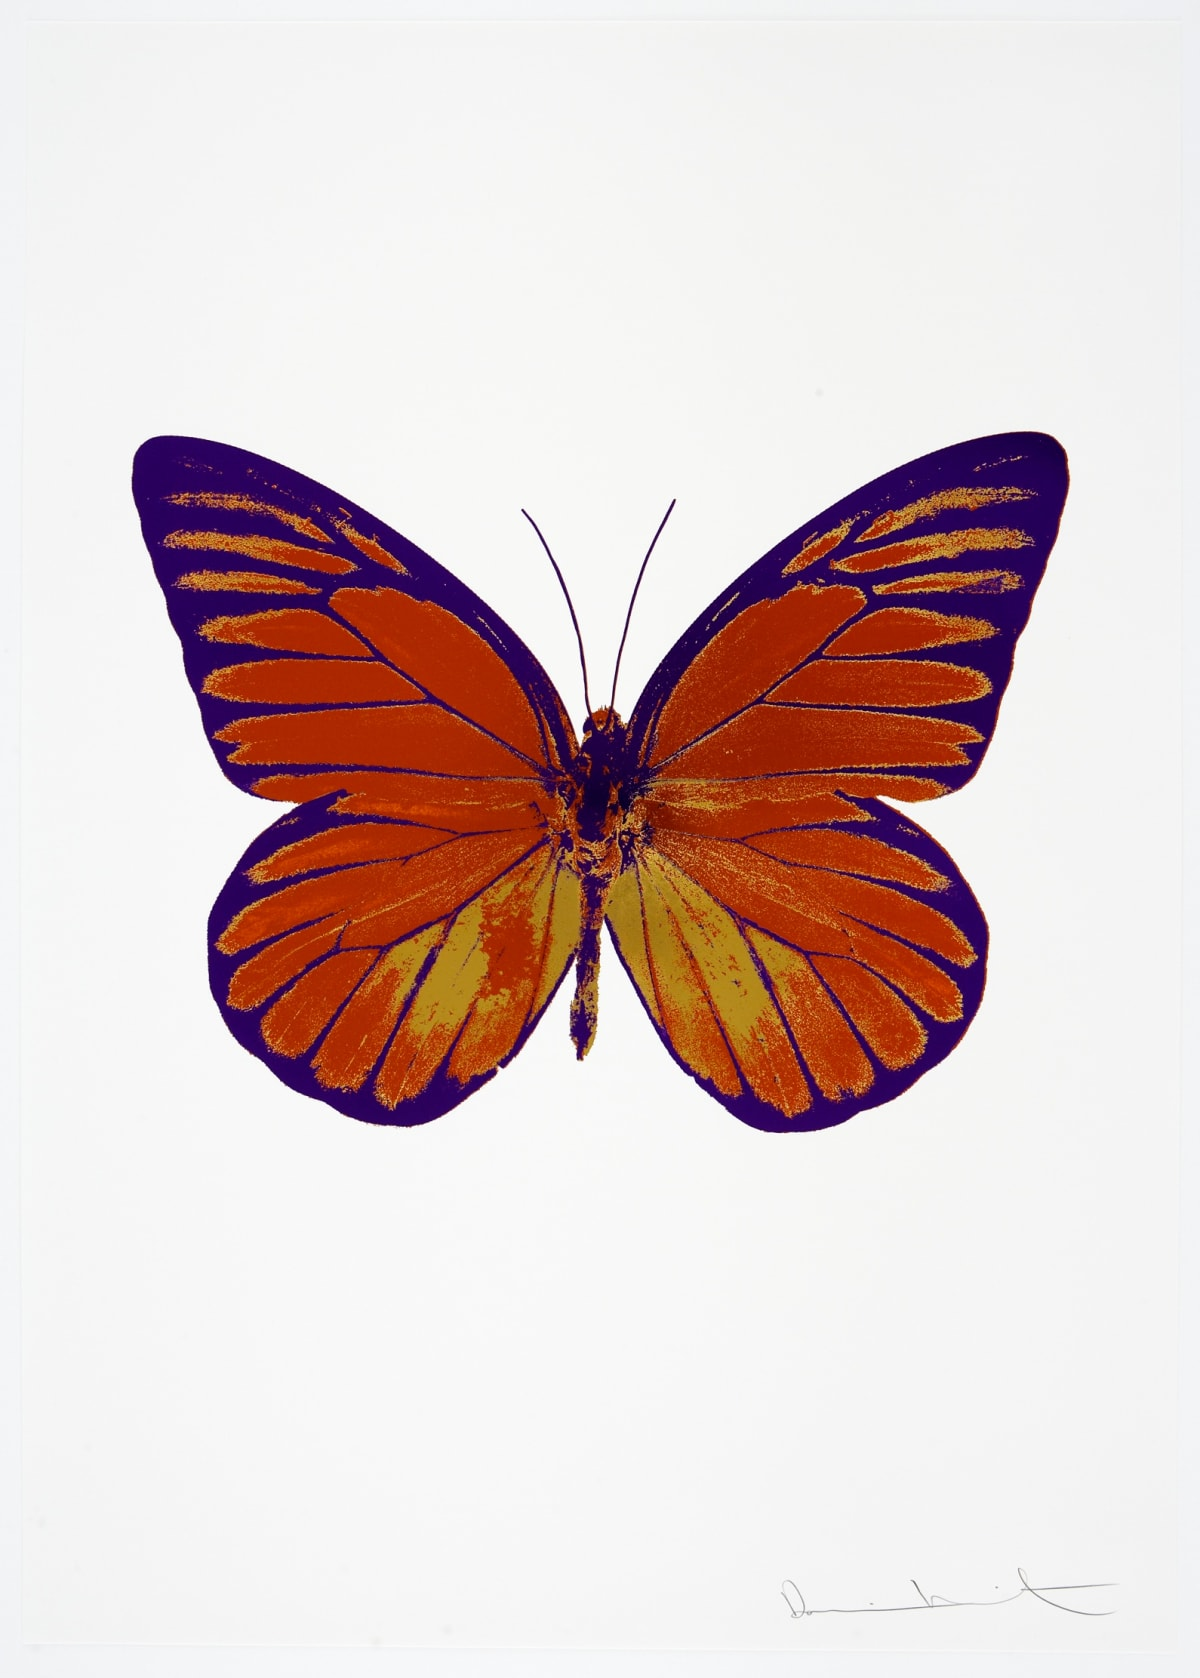 Damien Hirst The Souls I - Prairie Copper/Oriental Gold/Imperial Purple, 2010 3 colour foil block on 300gsm Arches 88 archival paper. Signed and numbered. Published by Paul Stolper and Other Criteria 72 x 51cm OC7777 / 659-40 Edition of 15